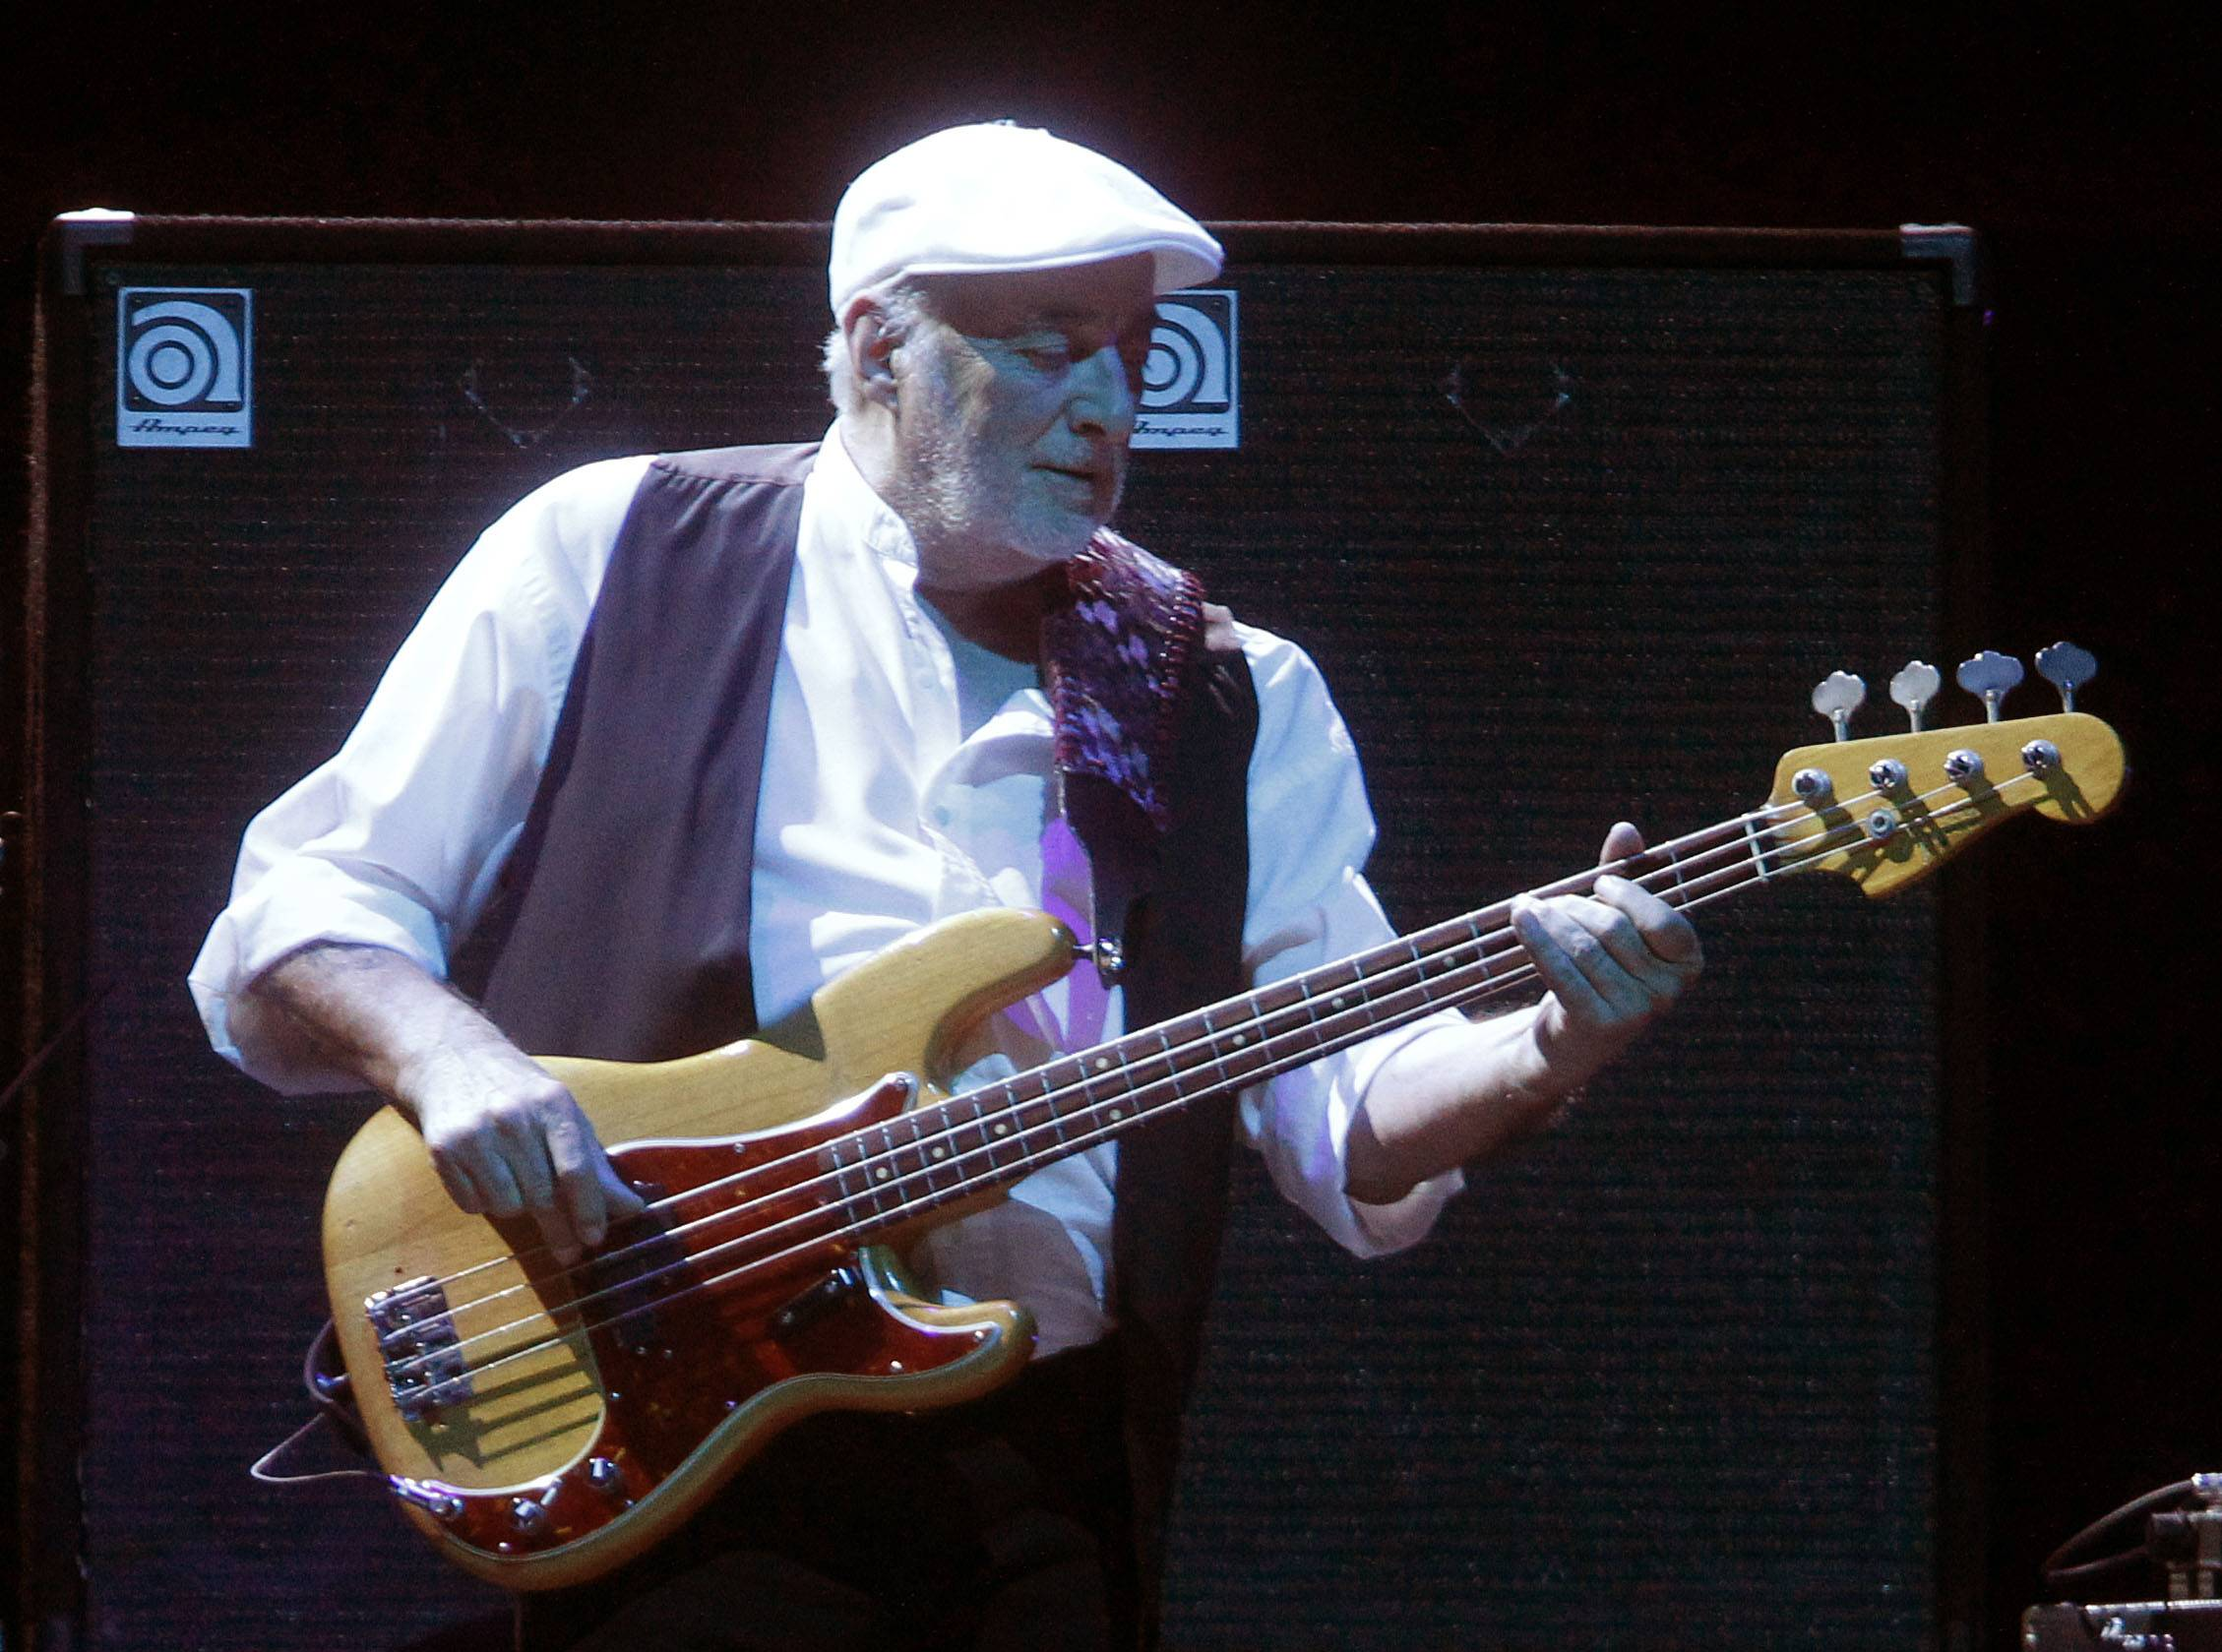 Bassist John McVie and Fleetwood Mac announced a 33-city U.S. tour Thursday. It's the first set of shows since they canceled performances last year when McVie was treated for cancer.